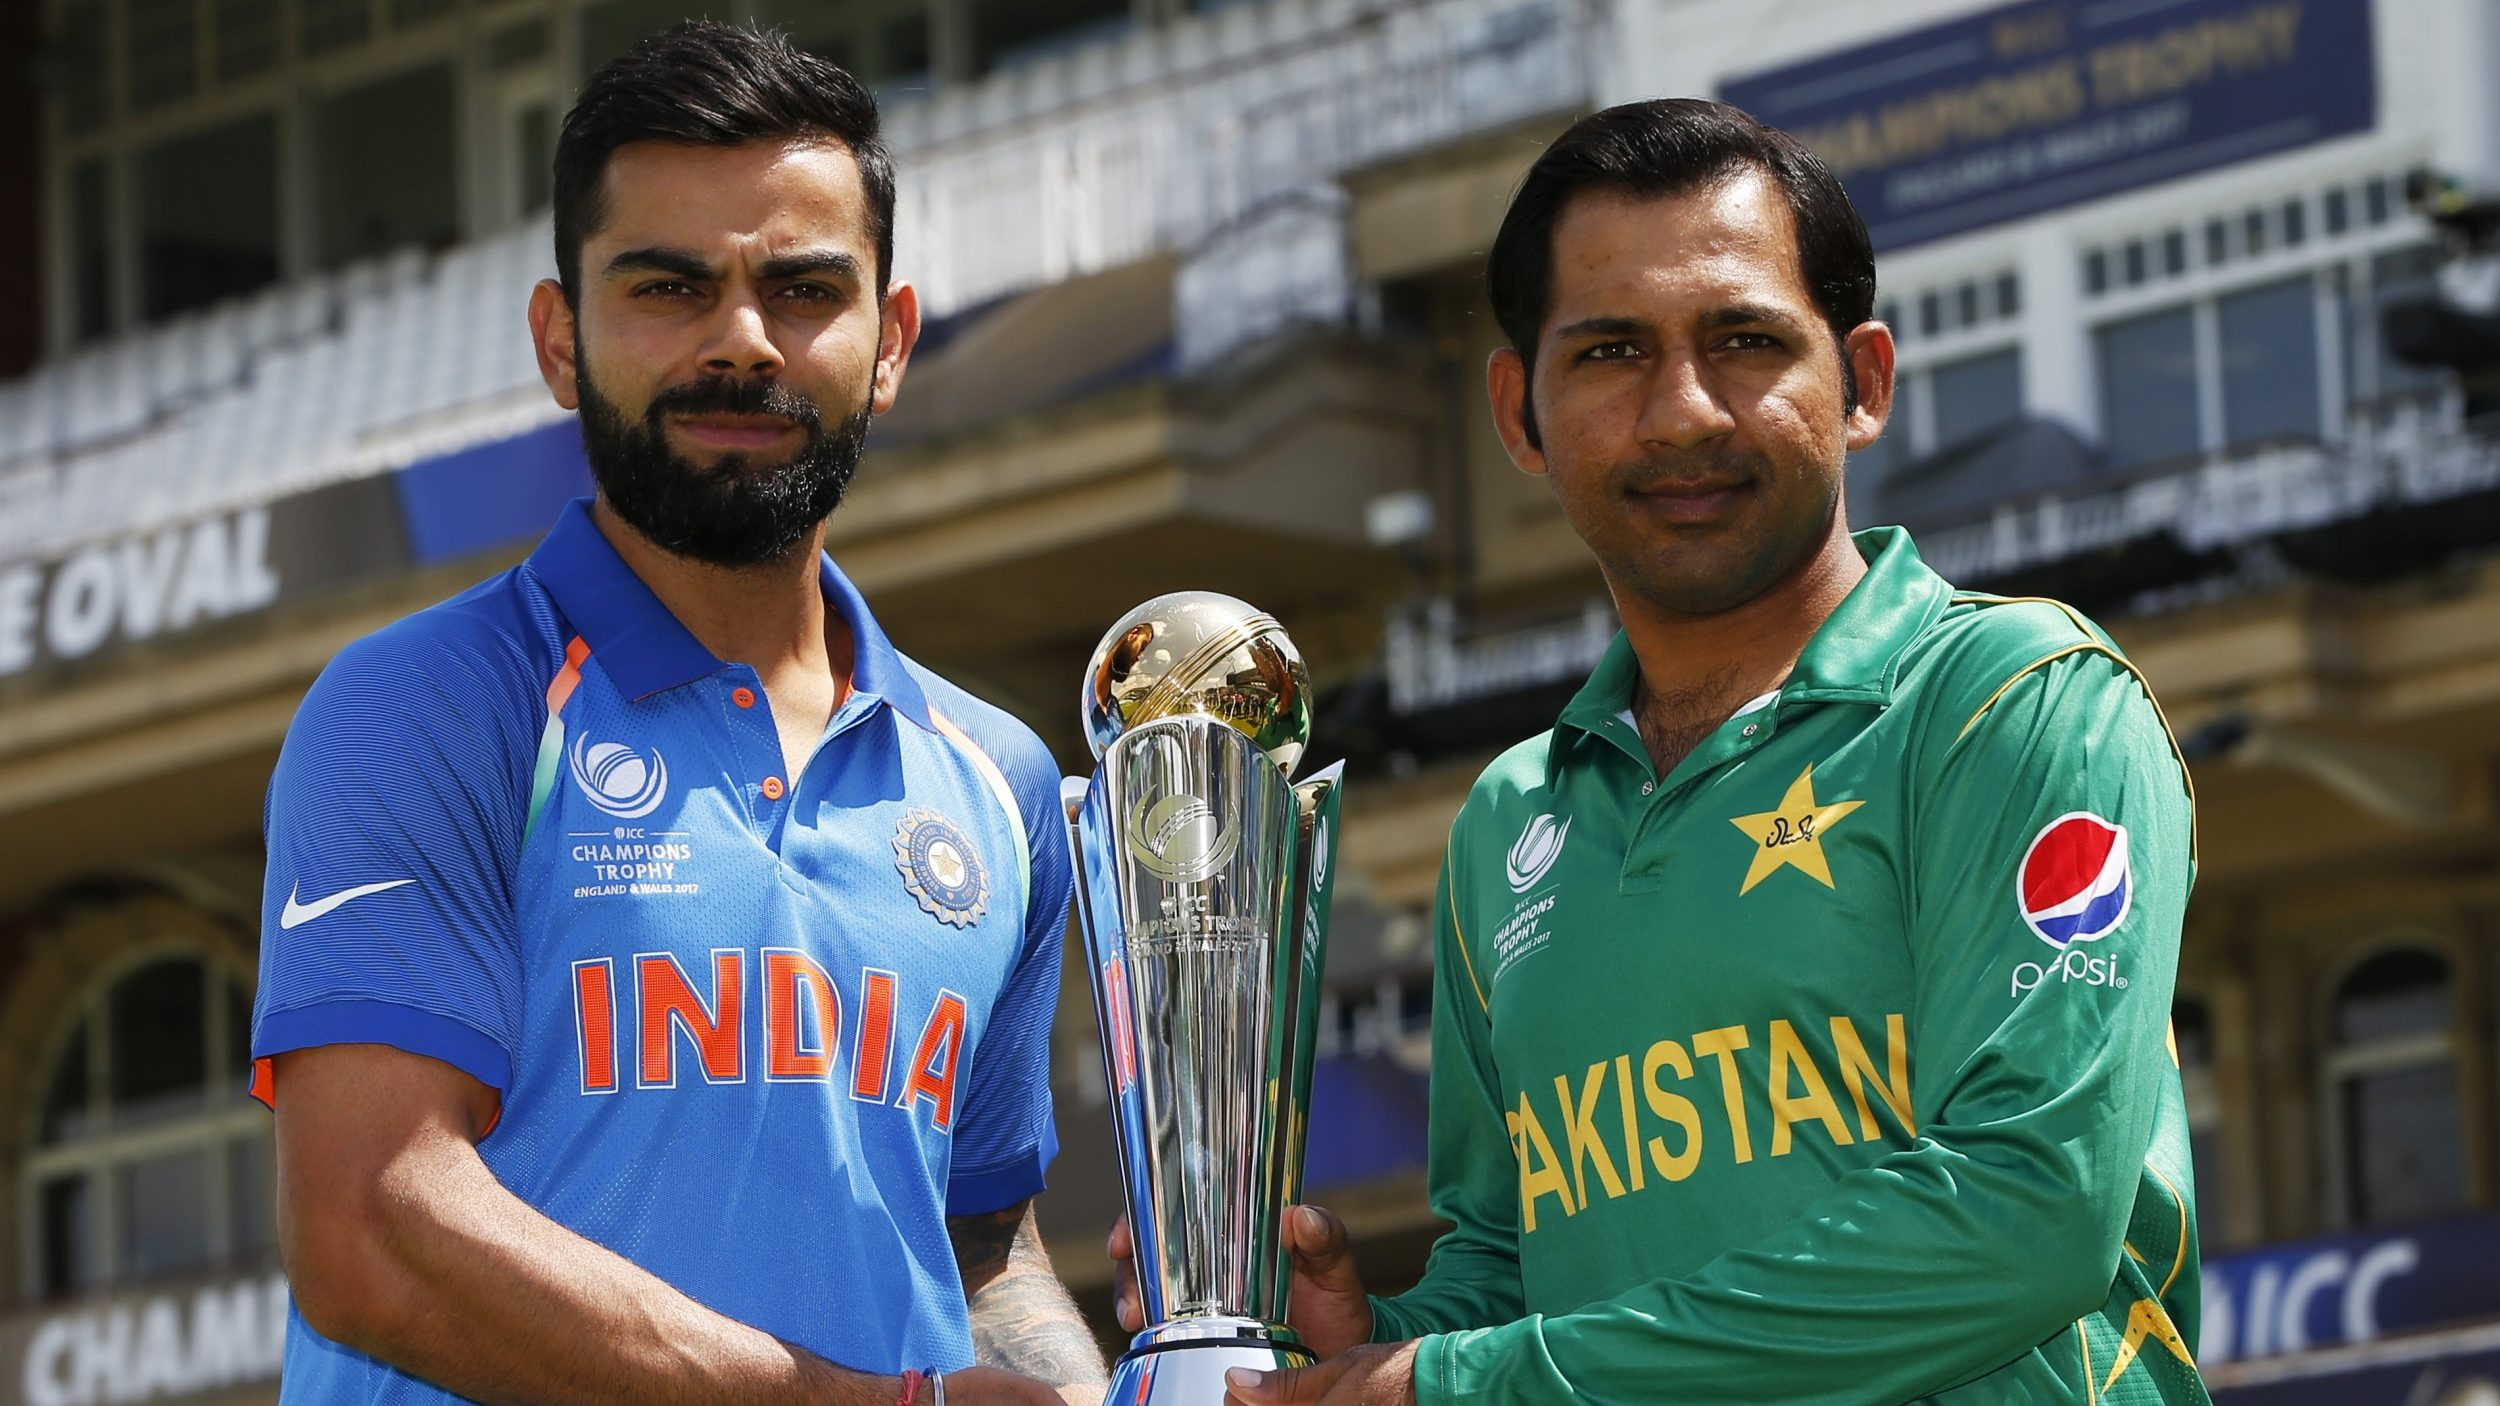 India vs Pakistan Cricket Match Cancelled Rain IND Vs PAK